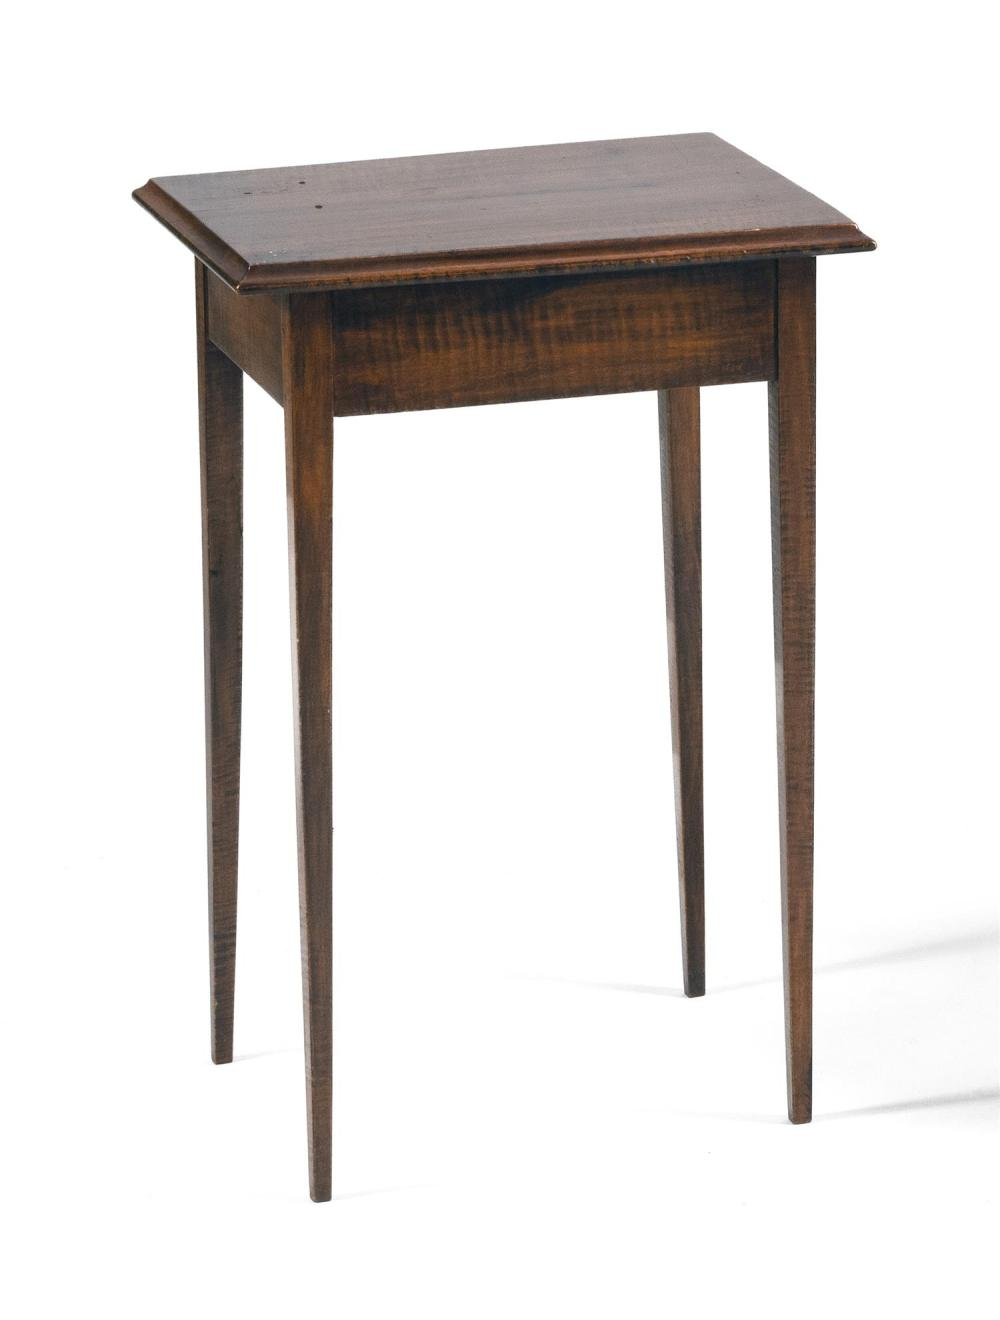 """COUNTRY HEPPLEWHITE STAND In curly maple, with a molded-edge top and slender tapered legs. Height 28.25"""". Top 16"""" x 18.5""""."""